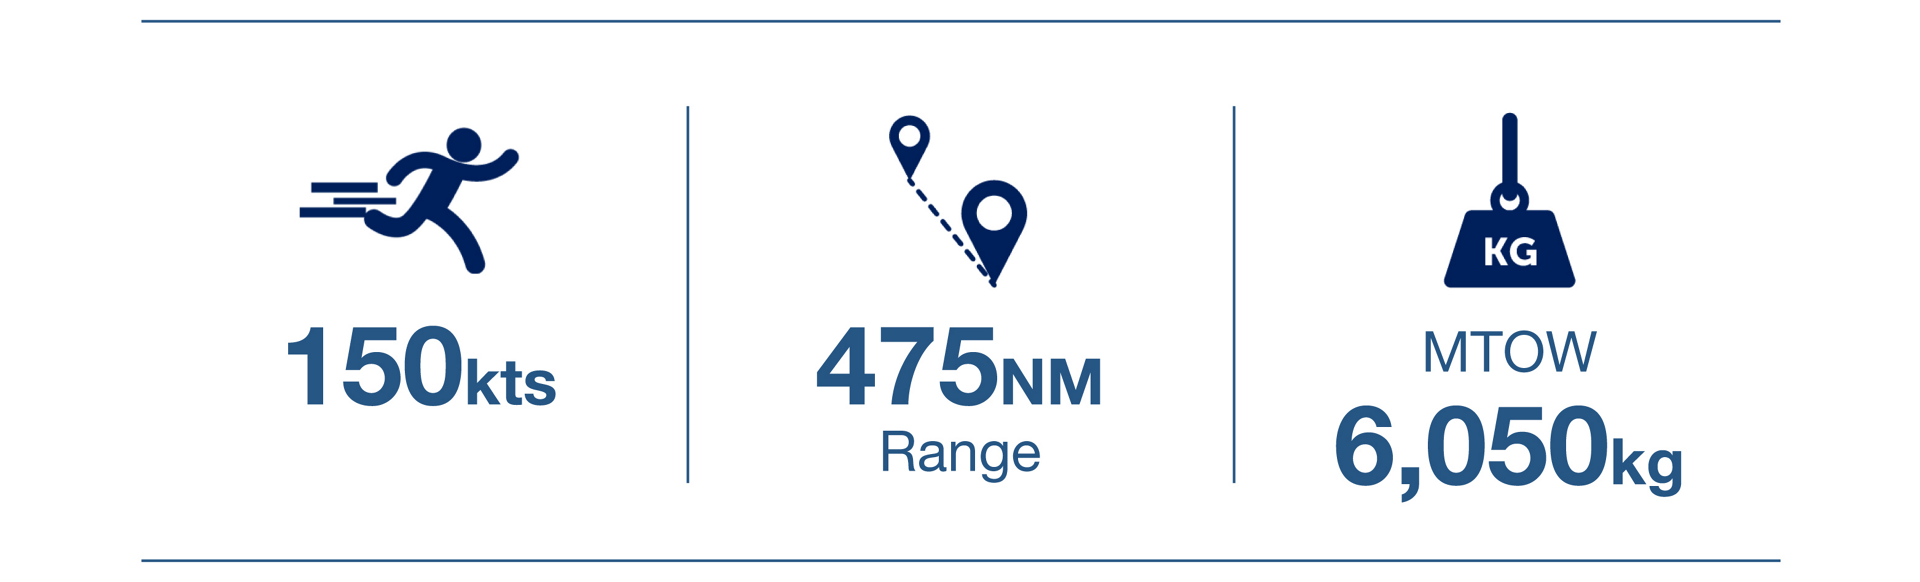 A three-element infographic displaying key performance figures for Airbus' H160 helicopter.